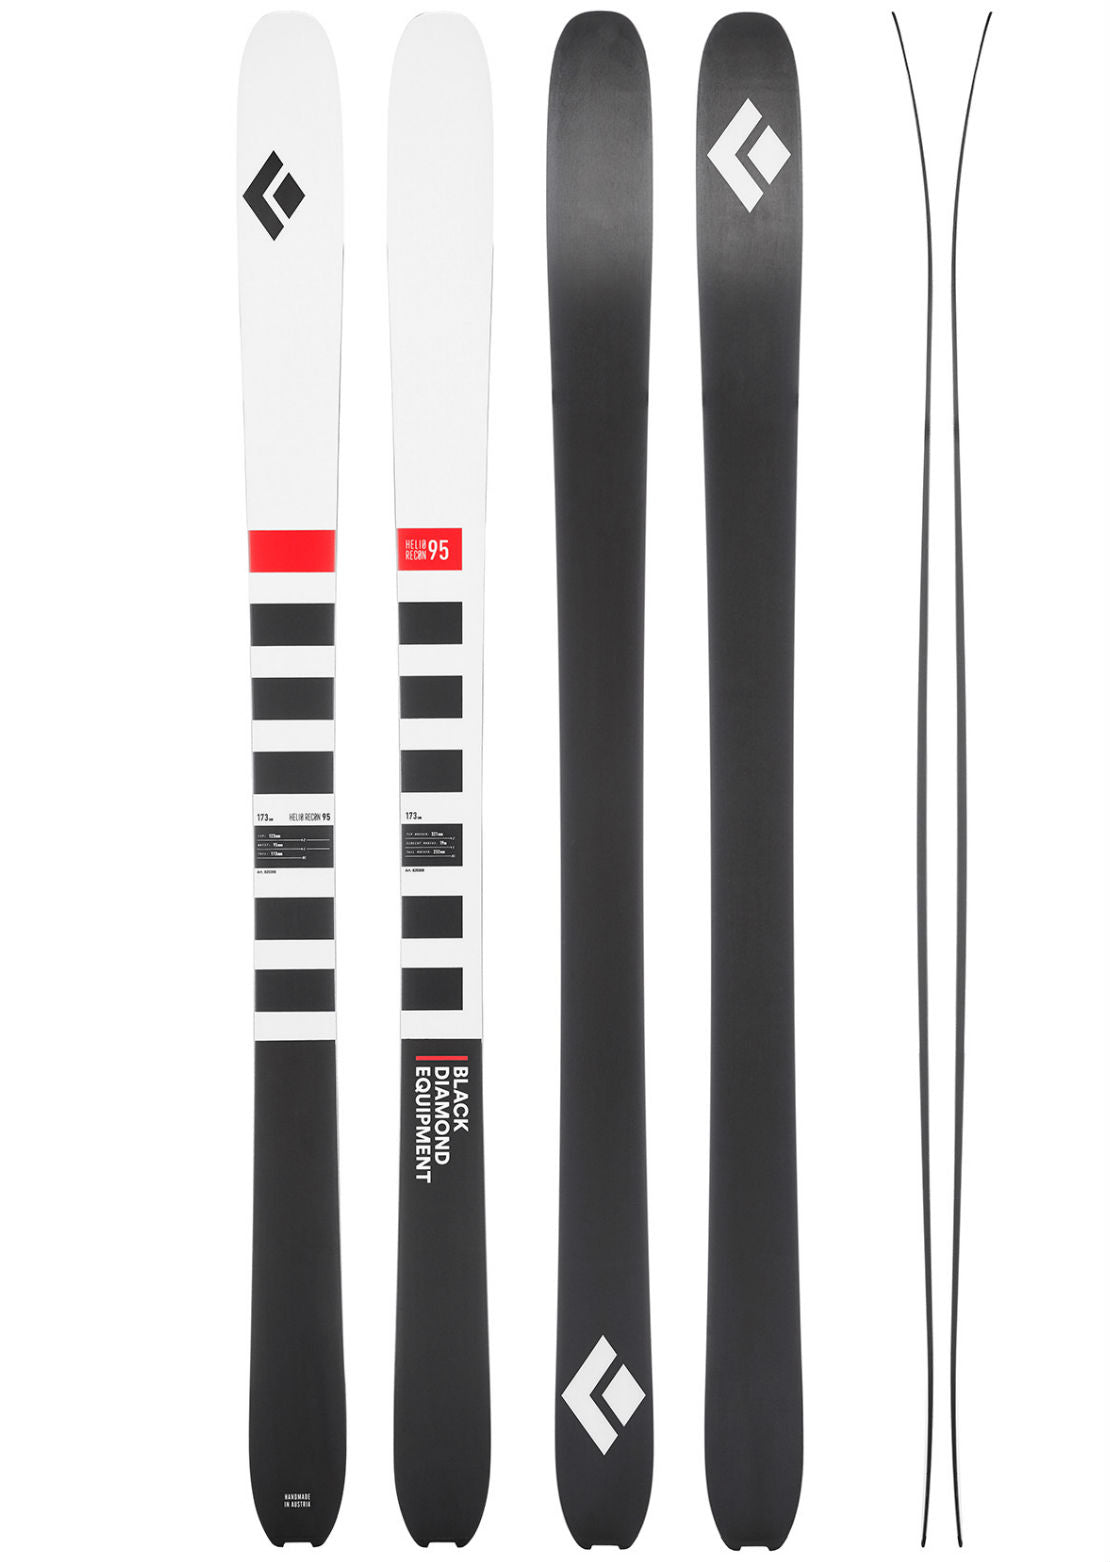 Black Diamond Helio Recon 95 Skis - 173 cm